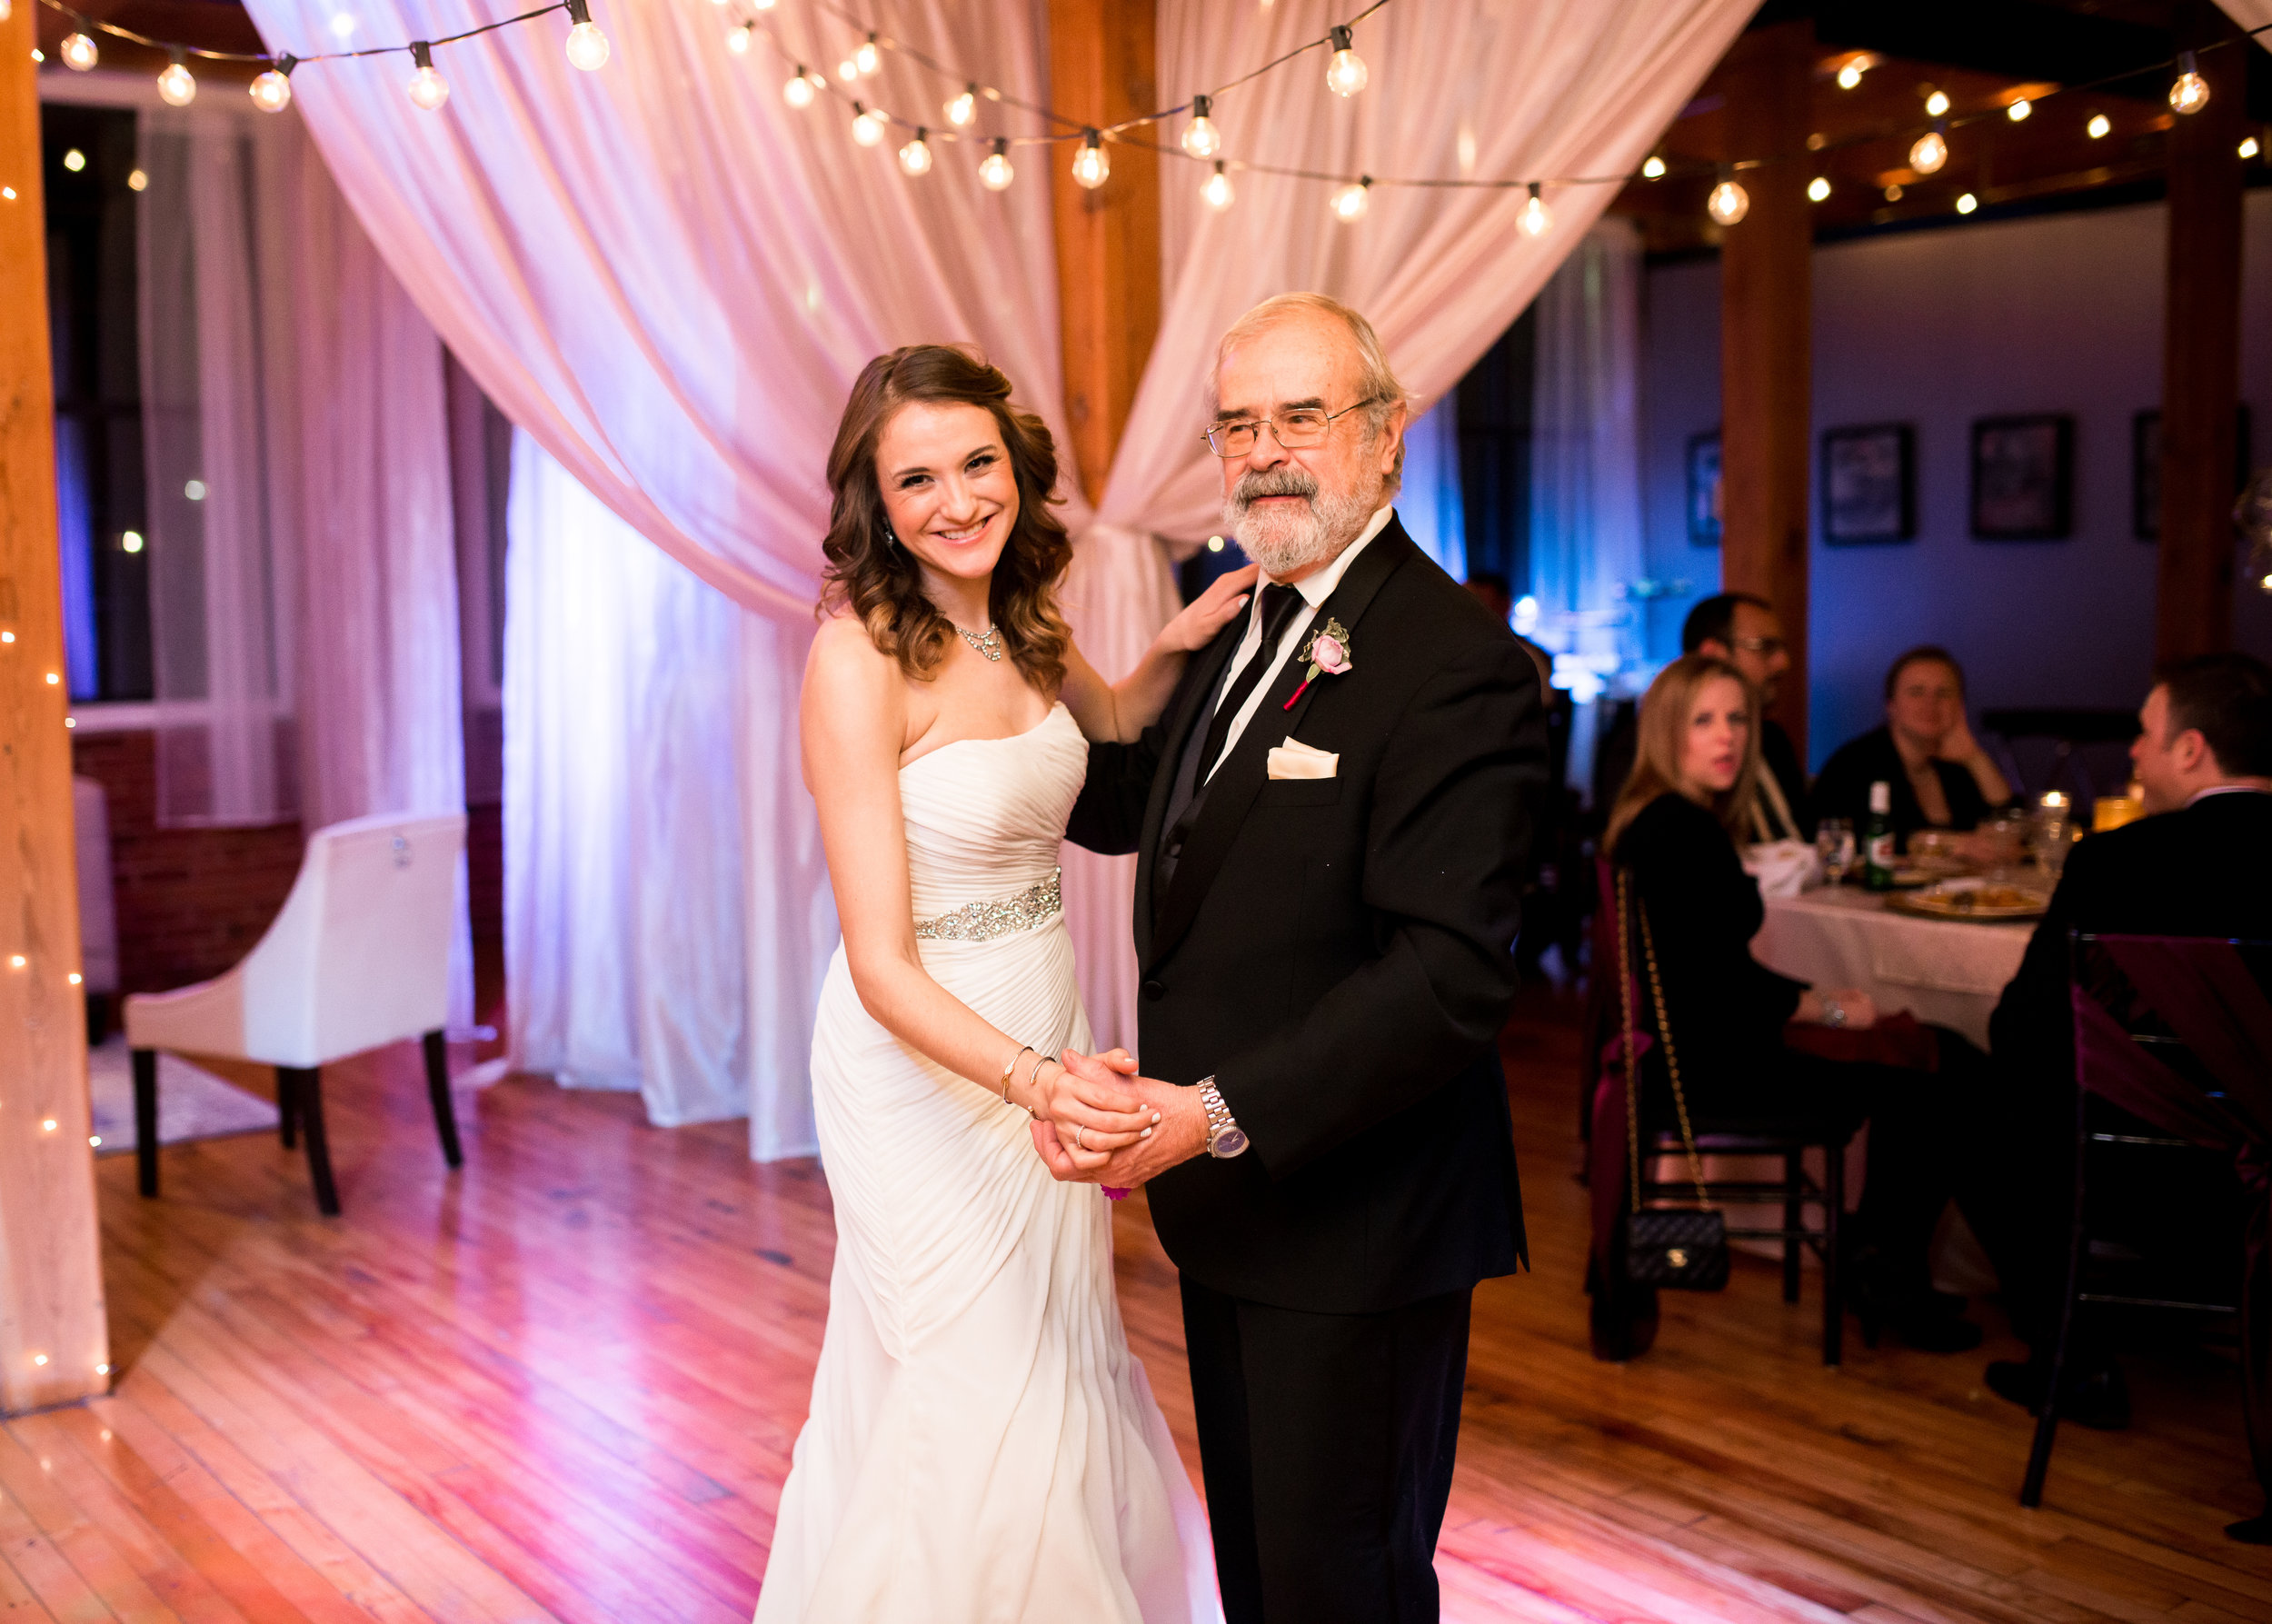 LUV LENS_WEDDING_EMILY AND ANDREW-374.jpg